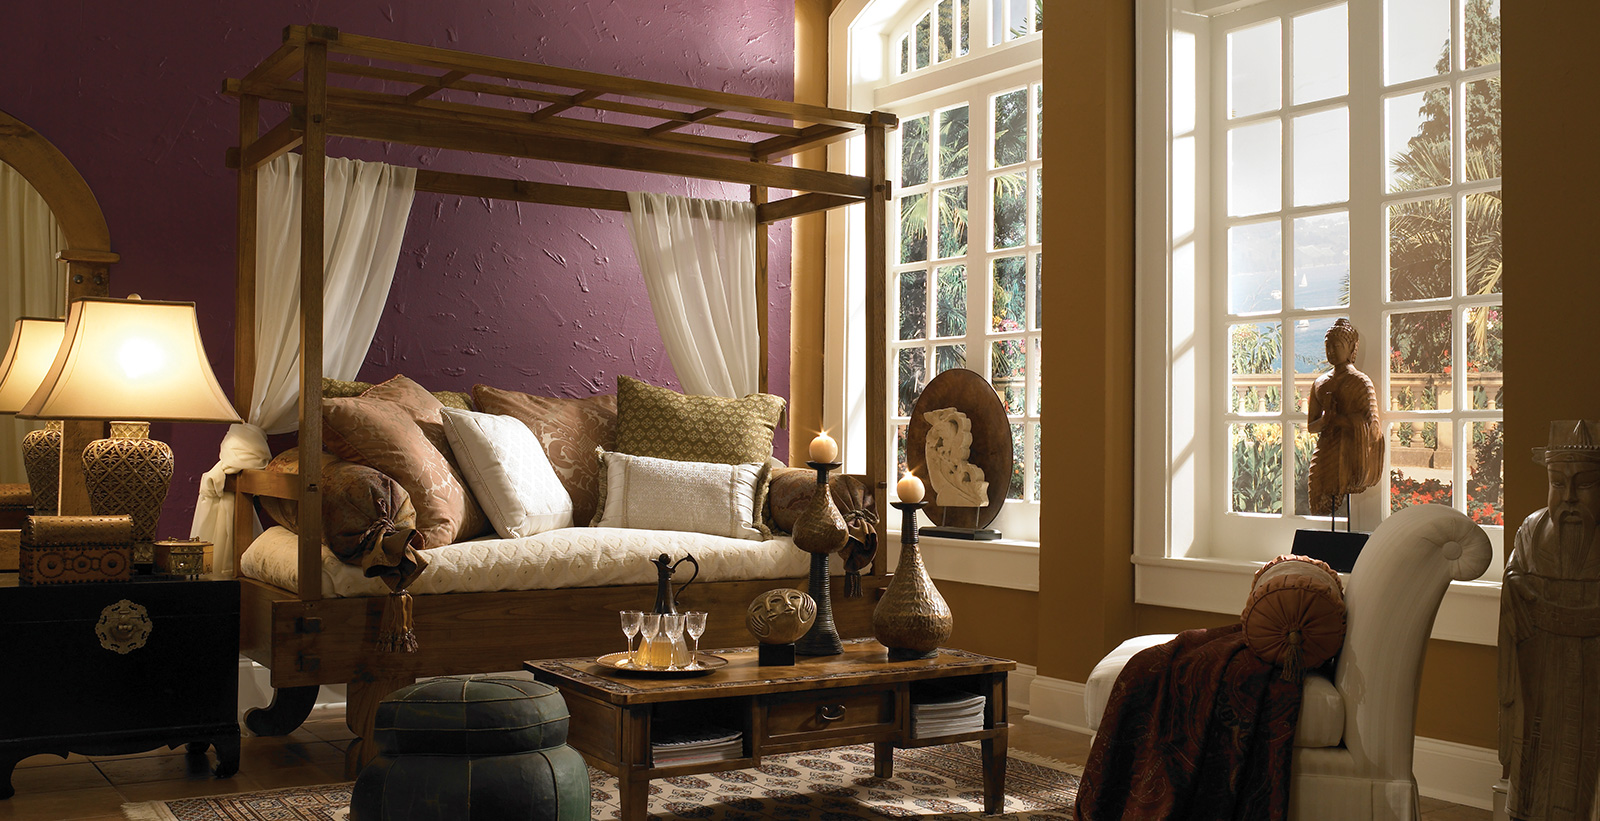 Global inspired living room with purple on main walls, gold on accent wall, white on trim, and 4 poster canopy daybed